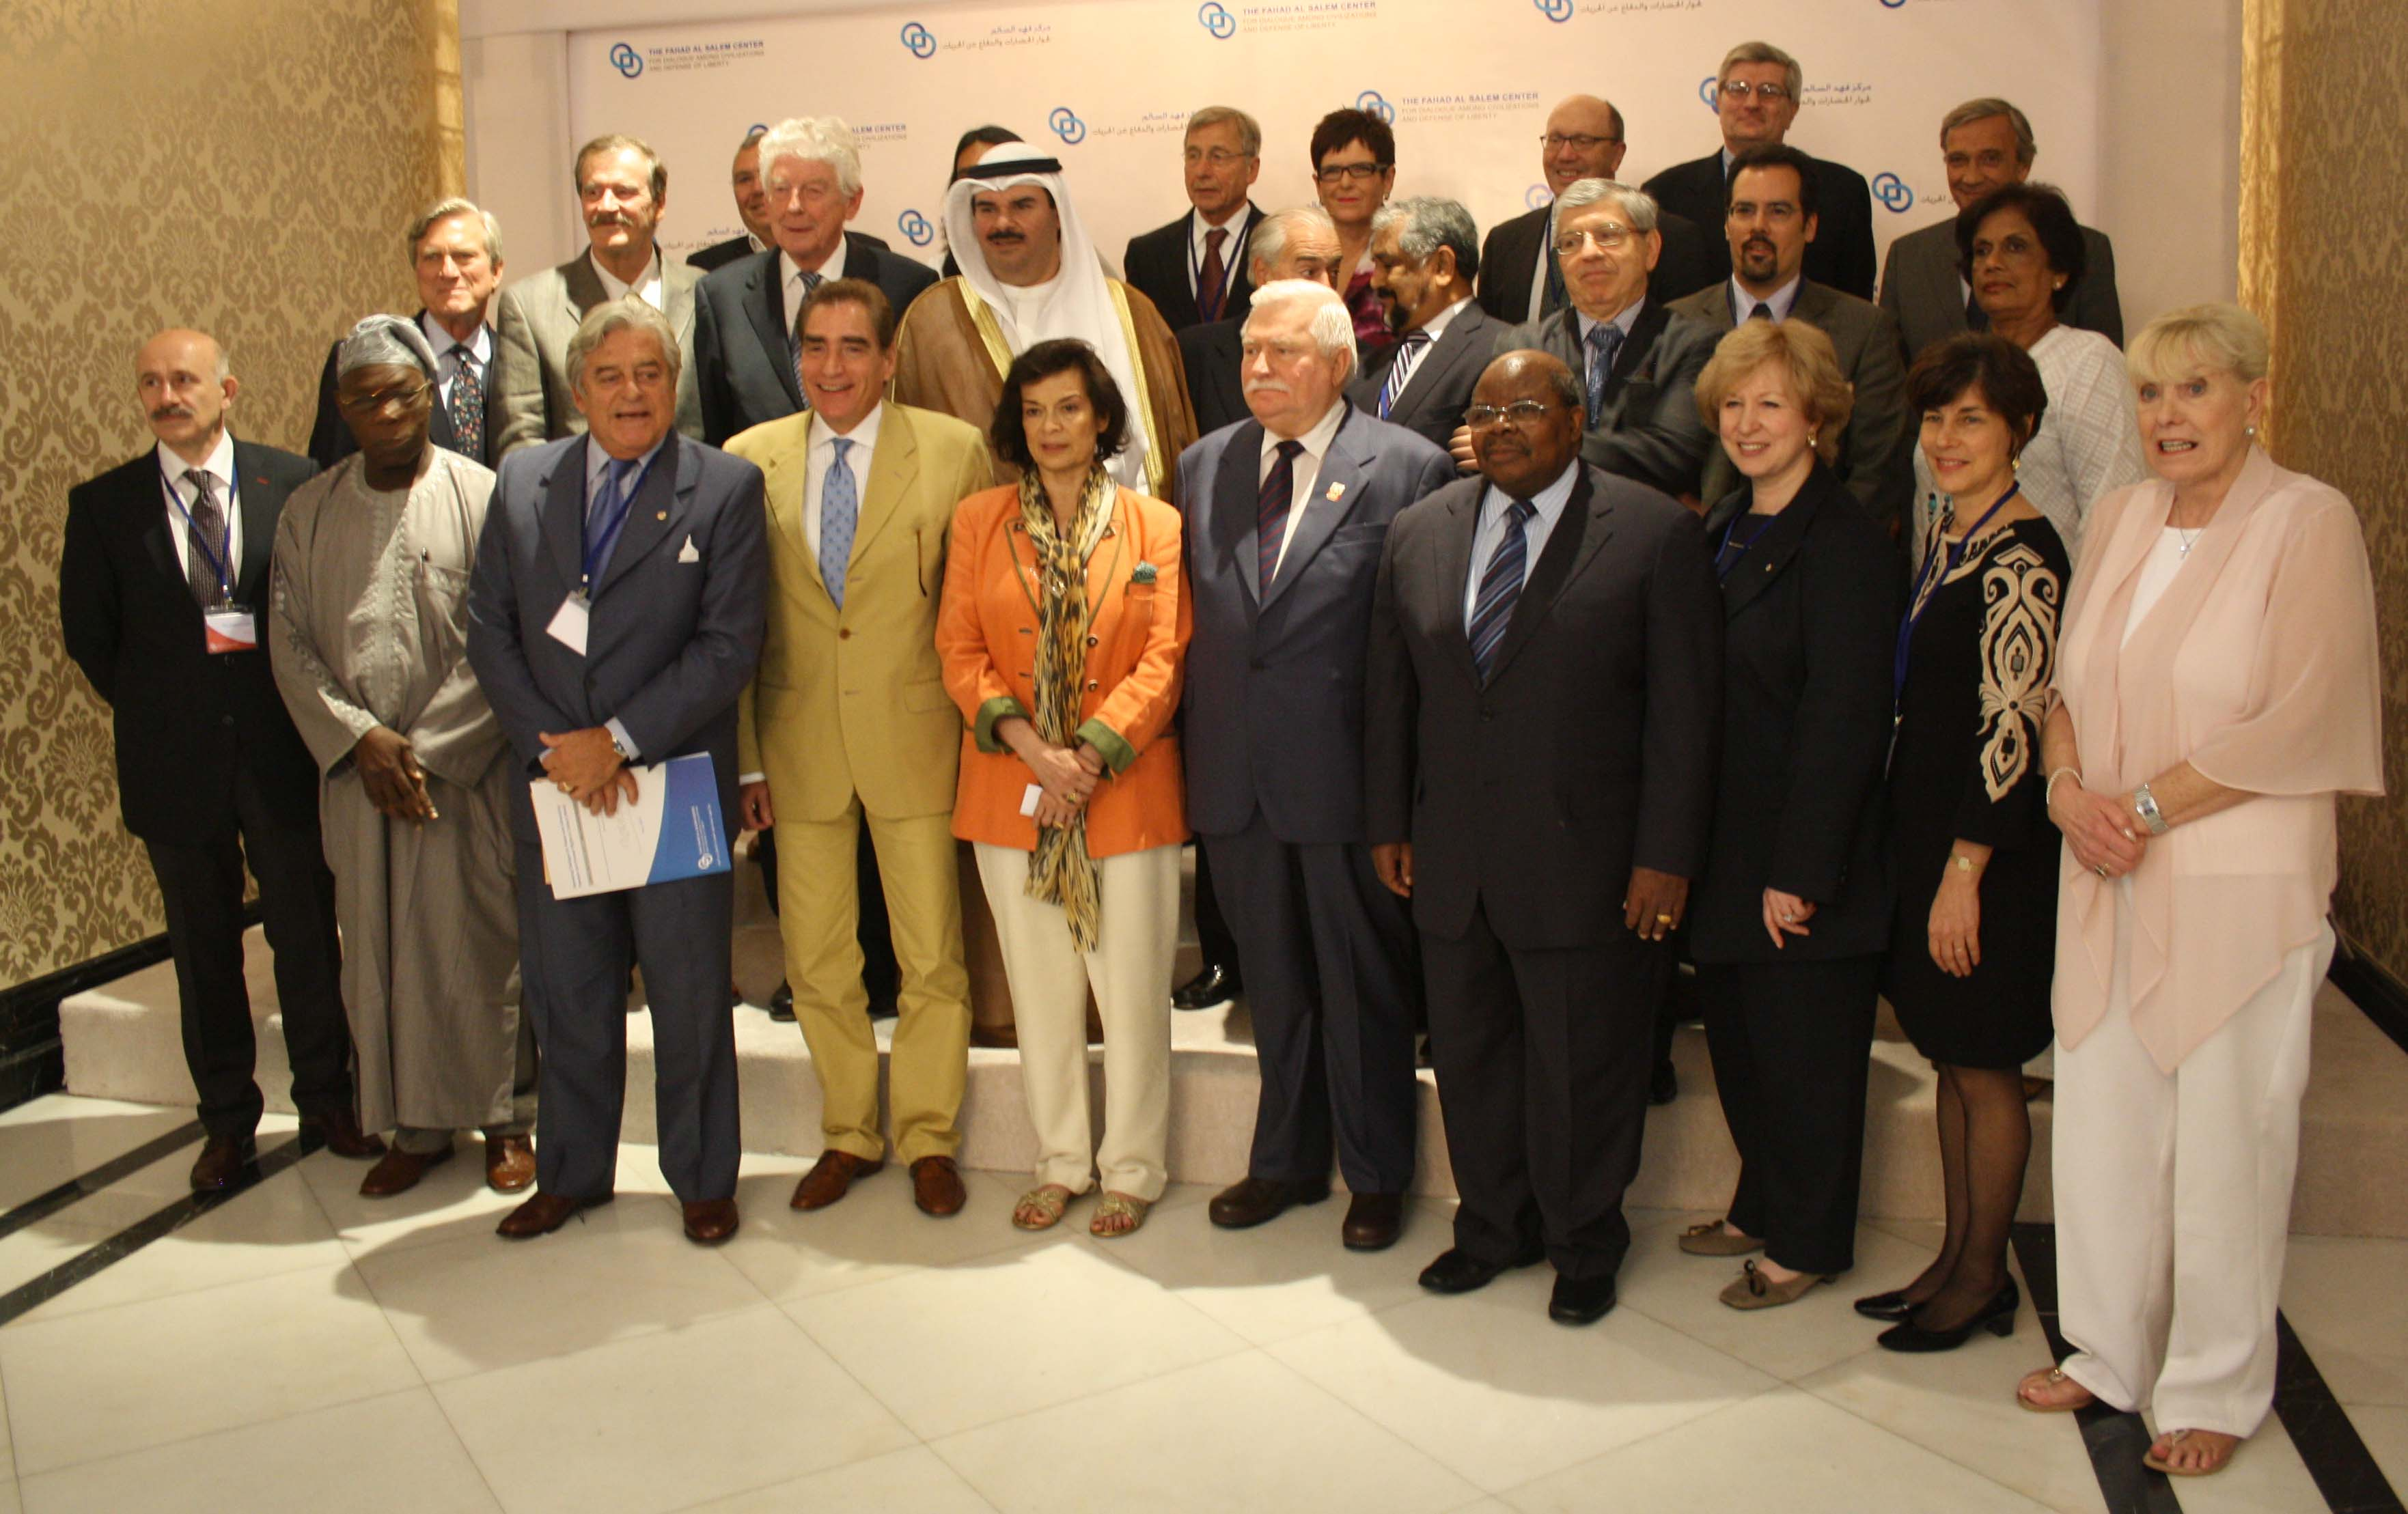 Former World Leaders Gather in Kuwait to Discuss Advancing Democractic Values and Human Rights